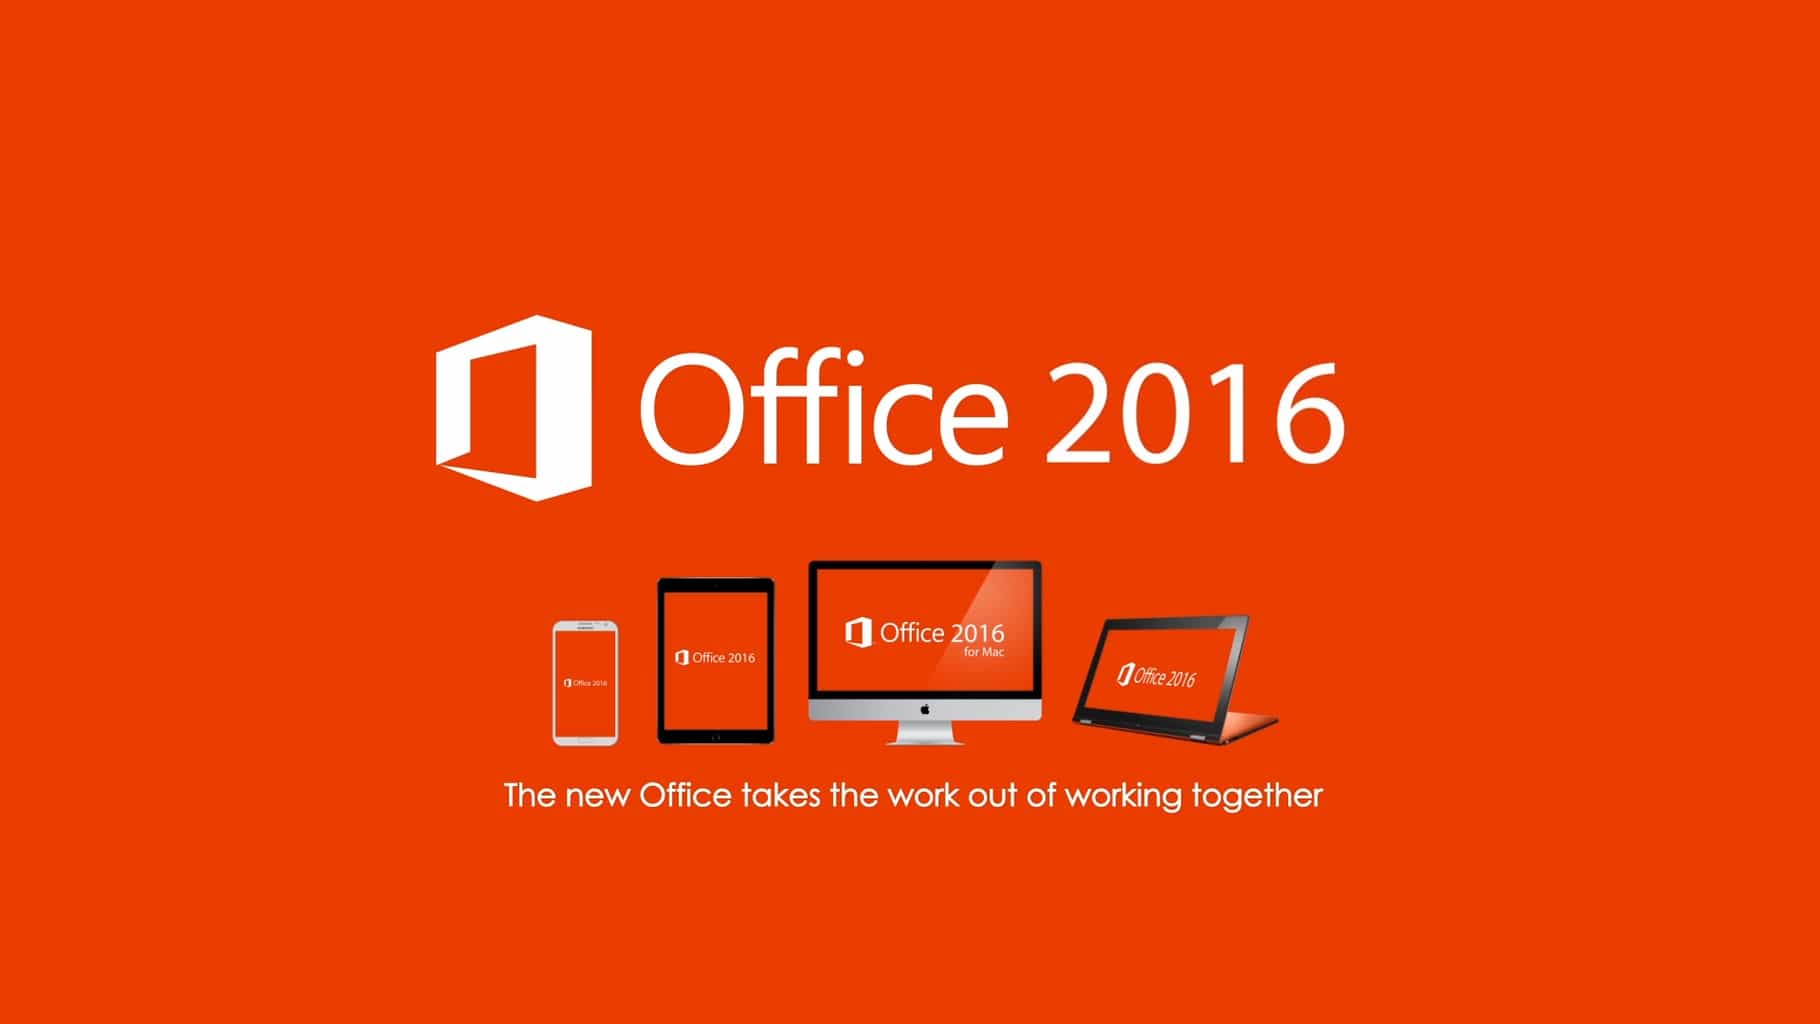 With microsoft office 2016 collaboration is simpler techcity